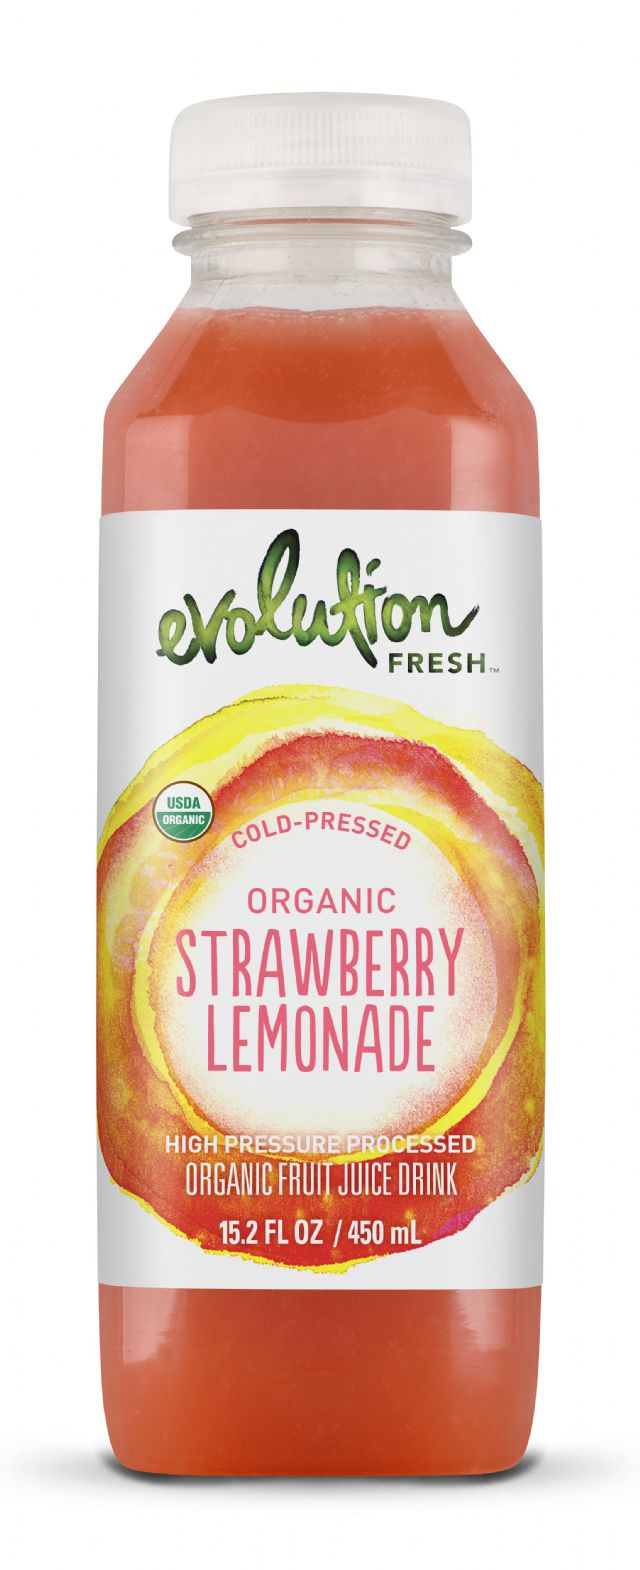 Evolution Fresh: OrganicStrawberryLemonade copy